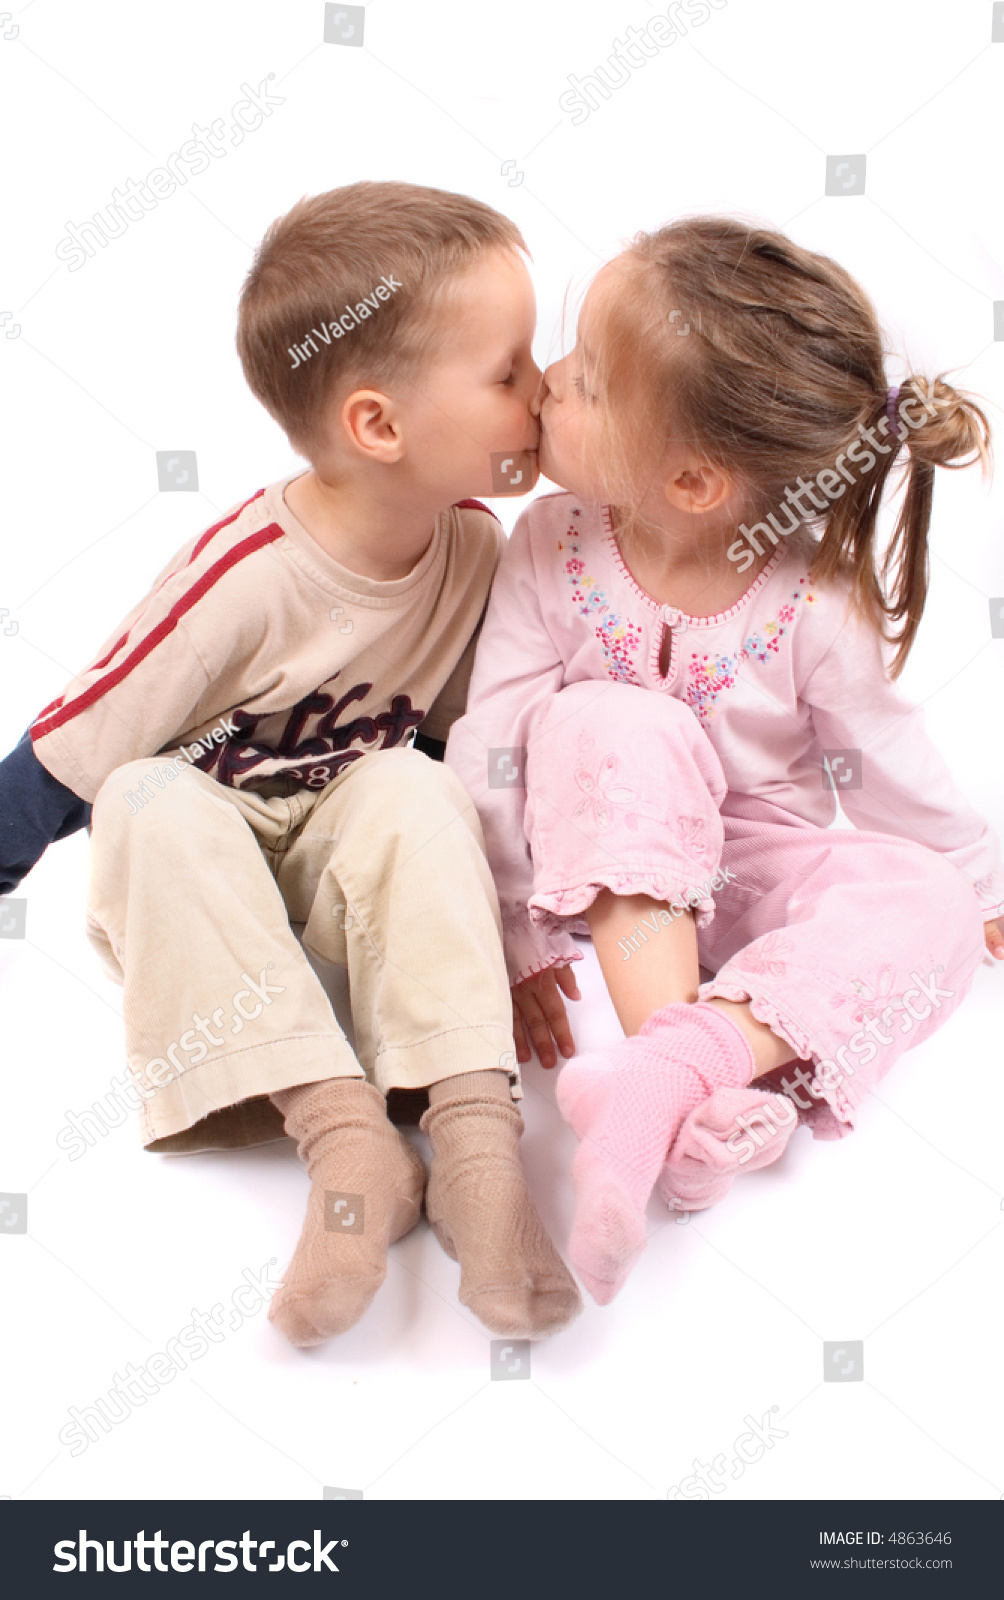 Boy Girl Kissing Each Other Stock Photo 4863646 - Shutterstock-5107